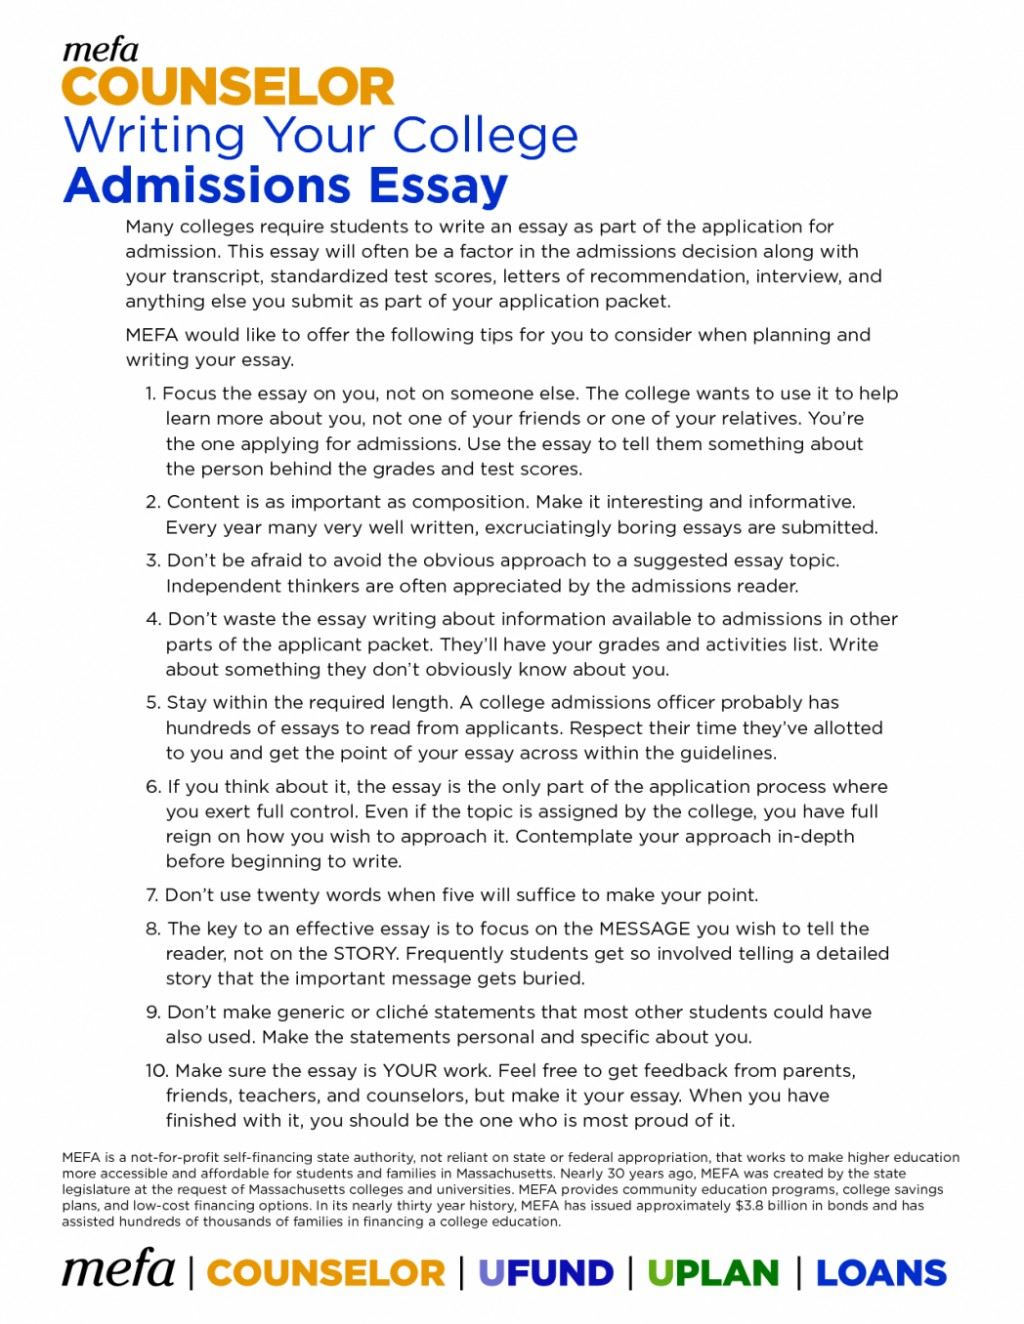 003 Essay Example How Long Should College Essays Writing Help High School Many Paragraphs Application Wuaom Pages Words What About Formatted In Mla Format Fascinating Be A For The Common App 2019 Large